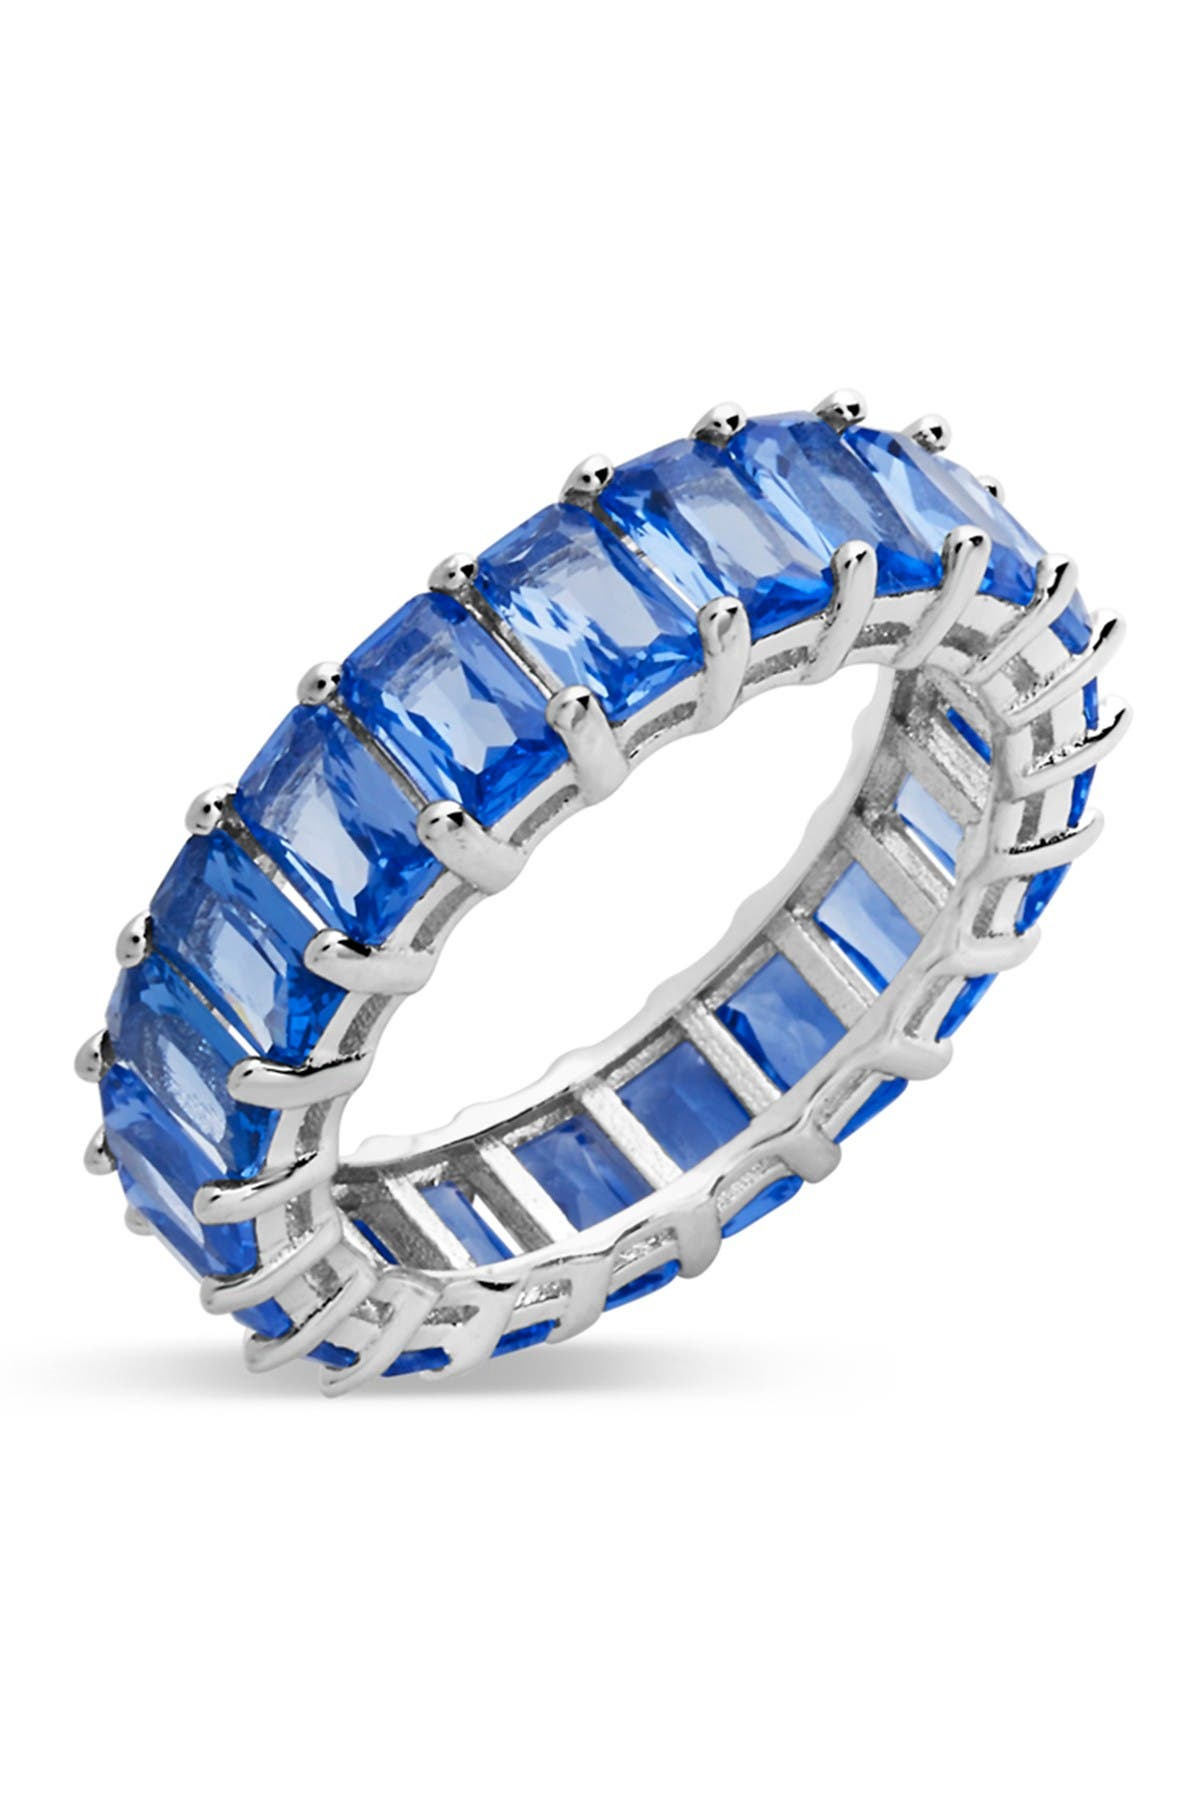 Image of Sterling Forever Sterling Silver Emerald Cut CZ Eternity Band - Light Sapphire